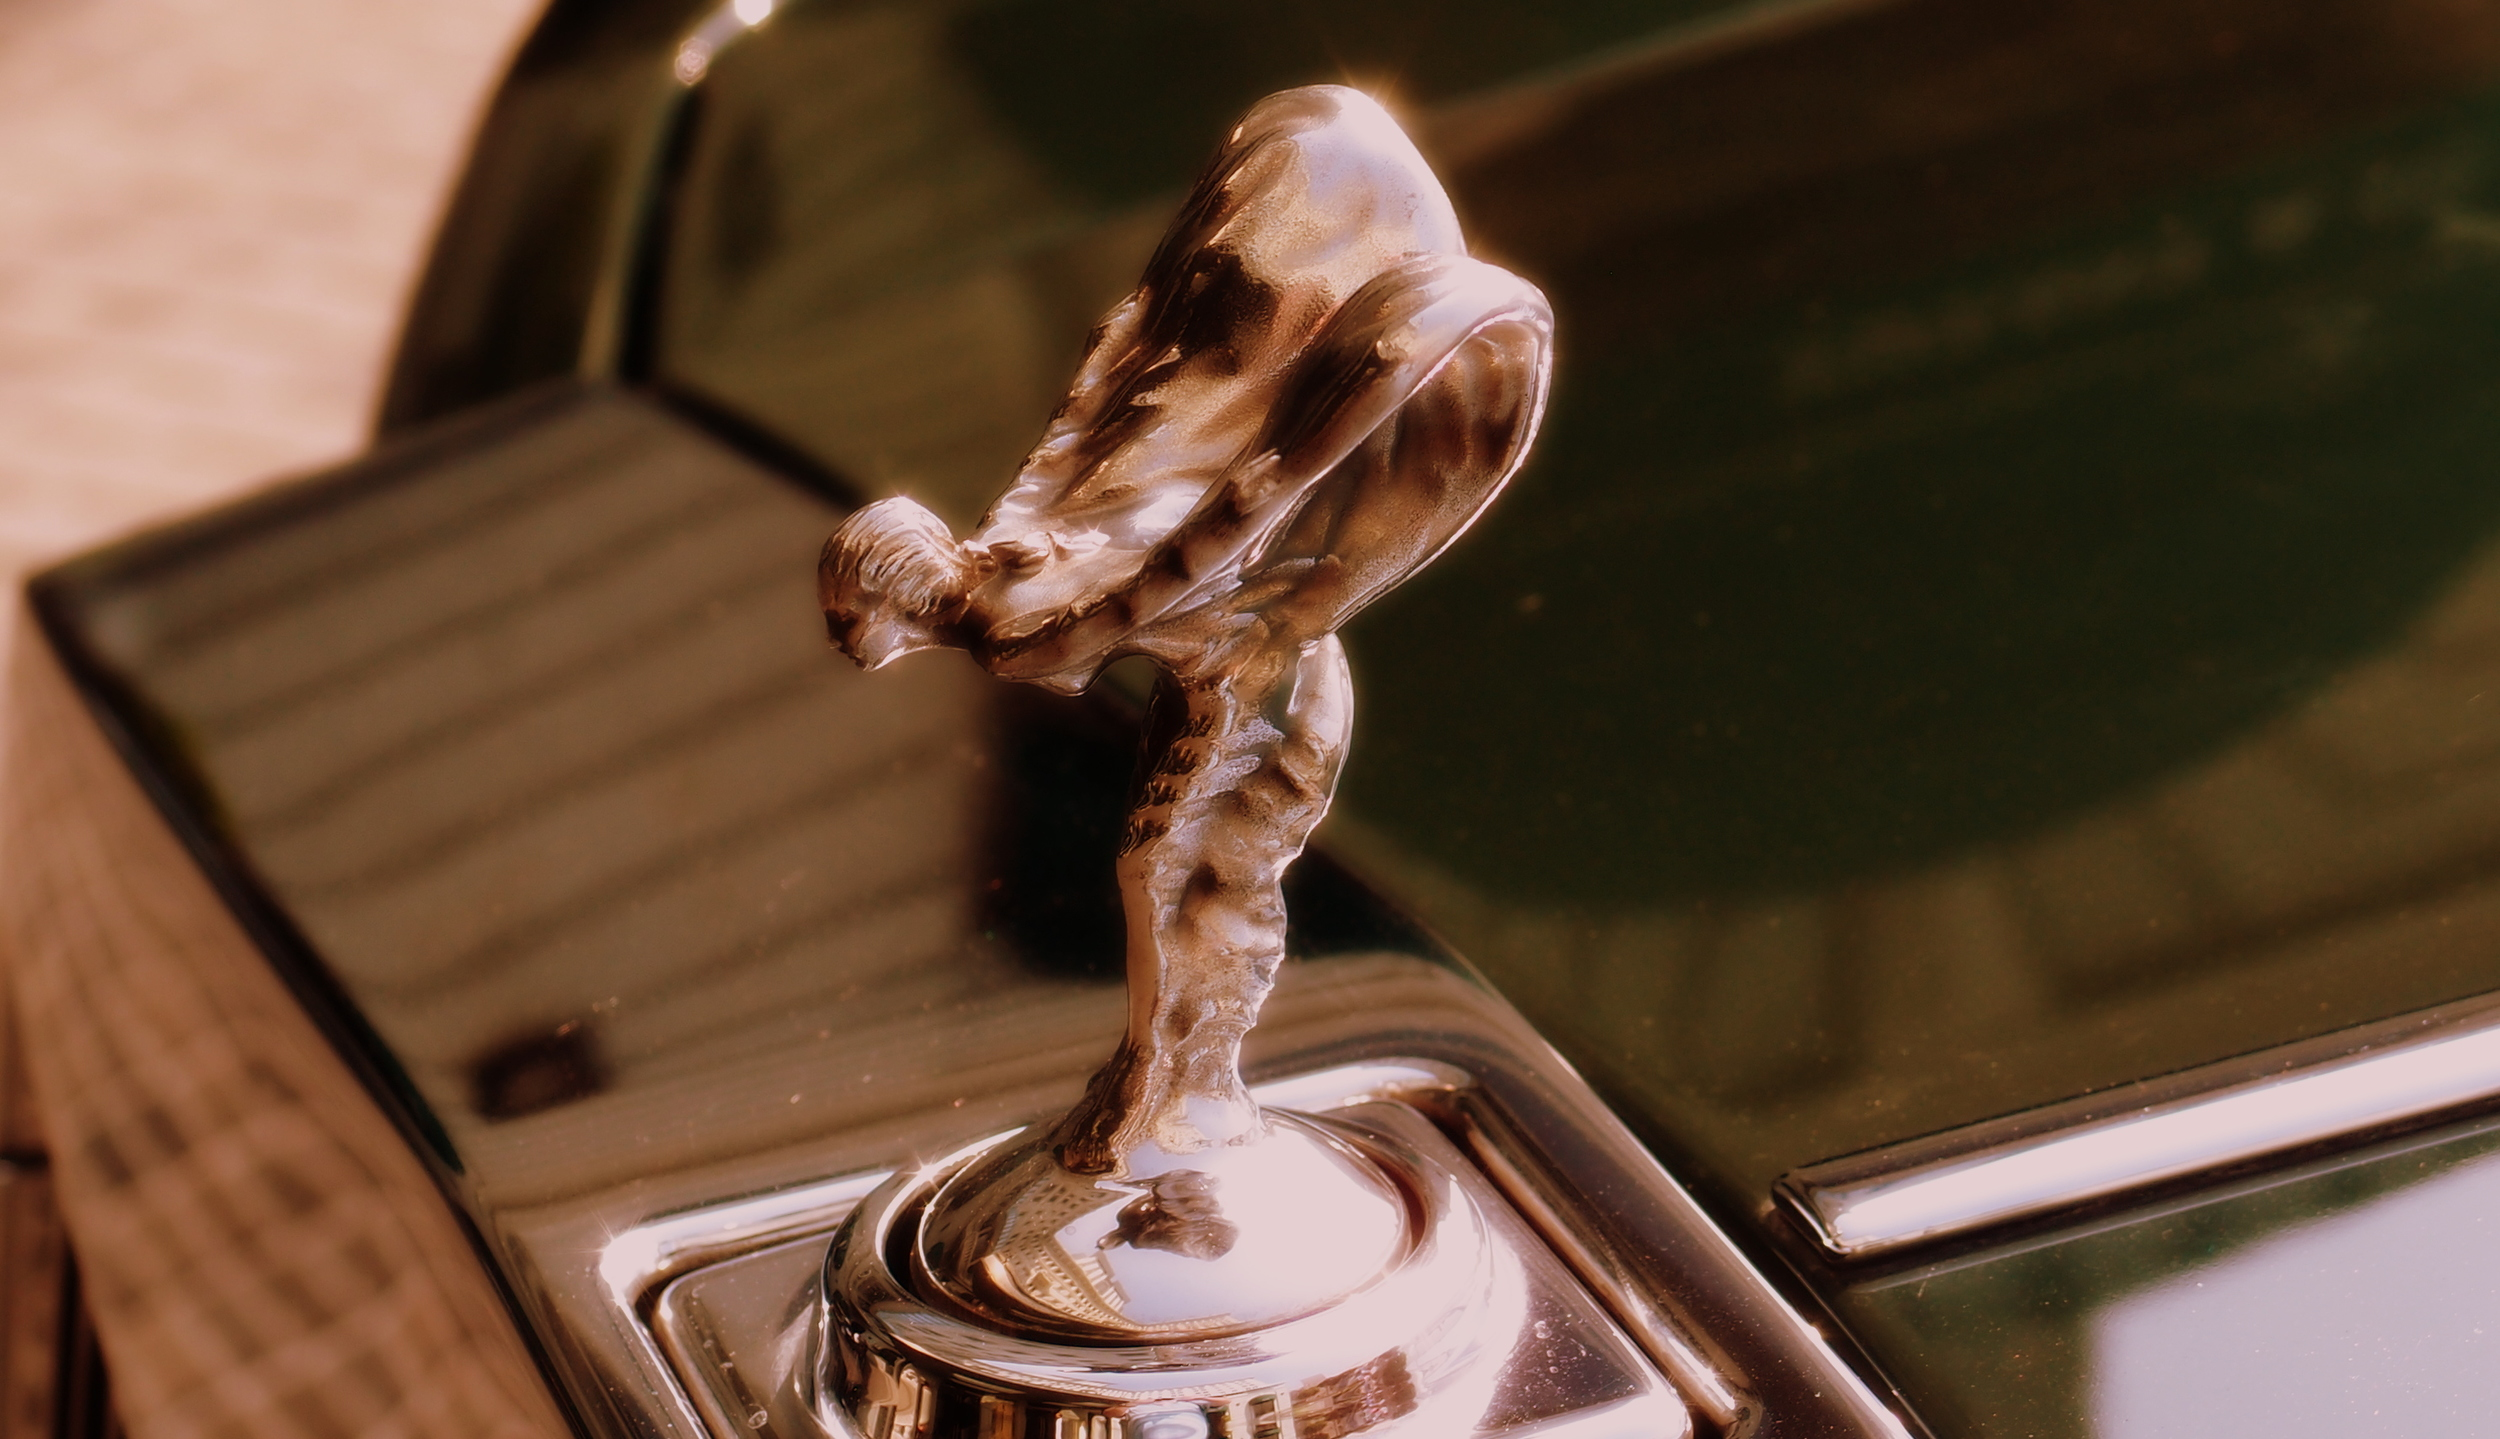 """The famous winged lady or """"Spirit of Ecstasy"""" which graces the bonnet of the Rolls Royce"""